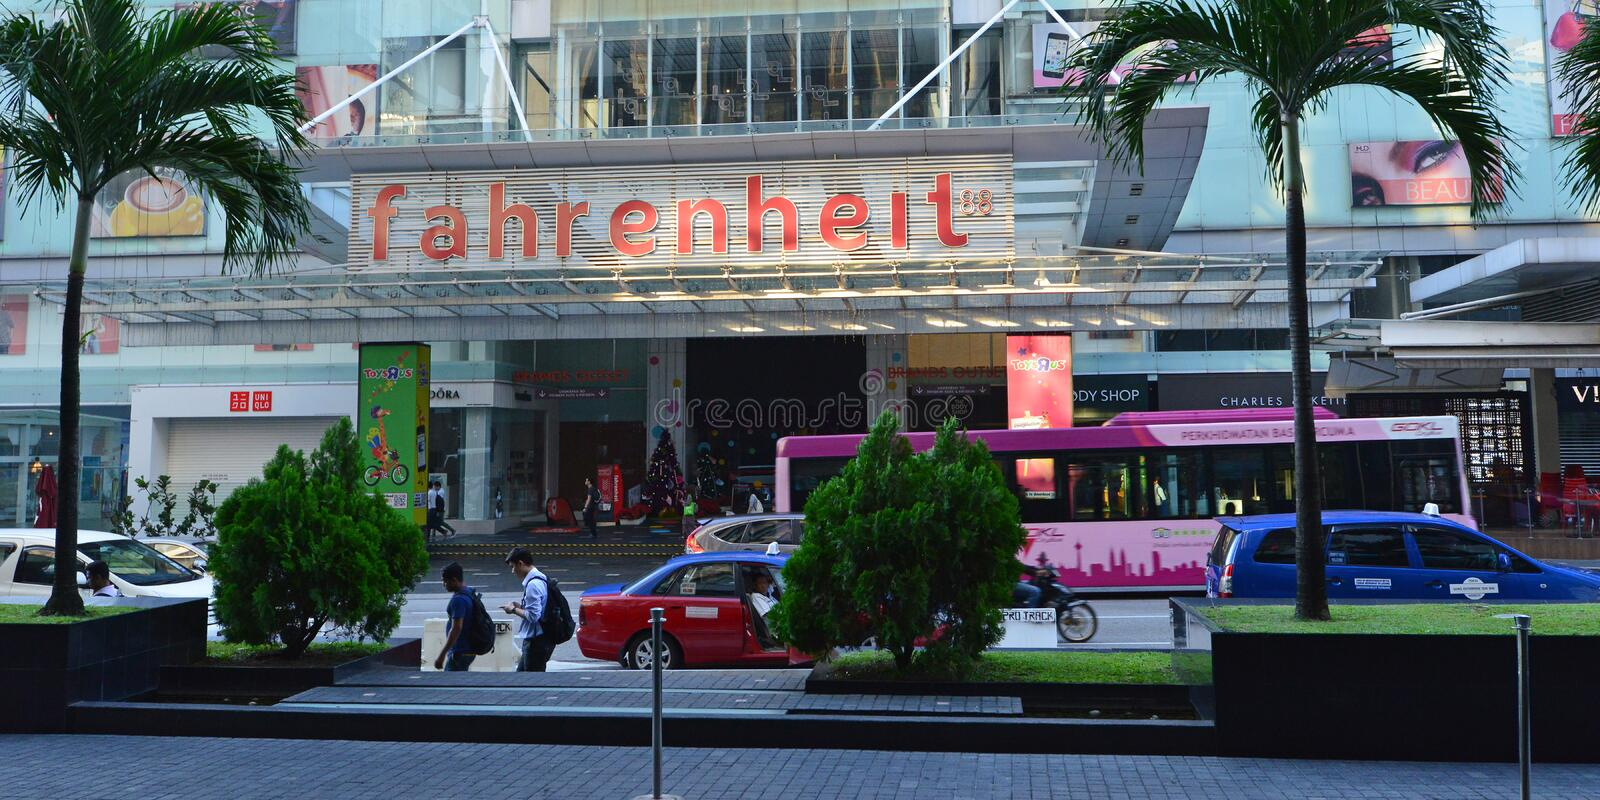 Fahrenheit 88 Shopping Centre. Fahrenheit 88 is a shopping centre in Bukit Bintang, Kuala Lumpur, Malaysia. The Fahrenheit 88 building reopened in August 2010 royalty free stock photos